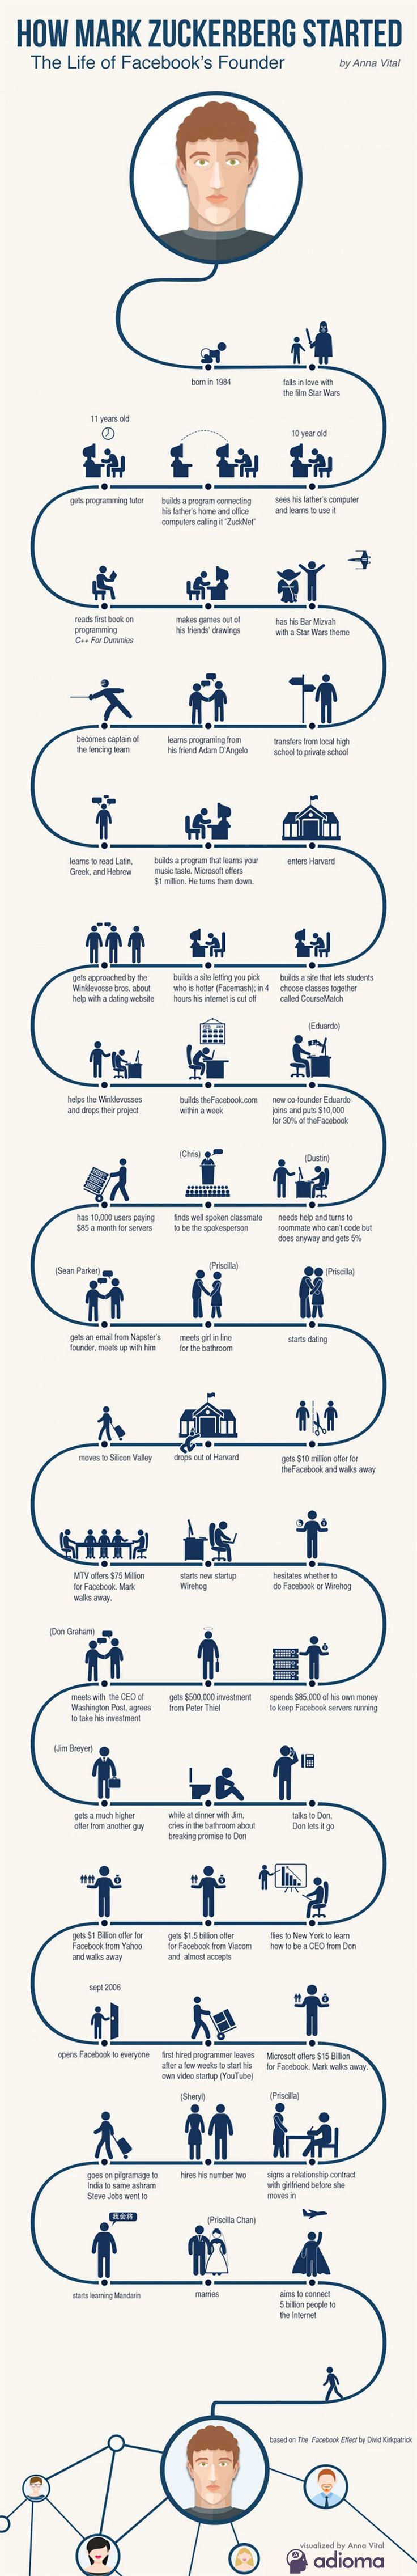 This infographic shows how Mark Zuckerberg started from the first time he used a computer to his multiple hacks and Facebook - his life path visualized